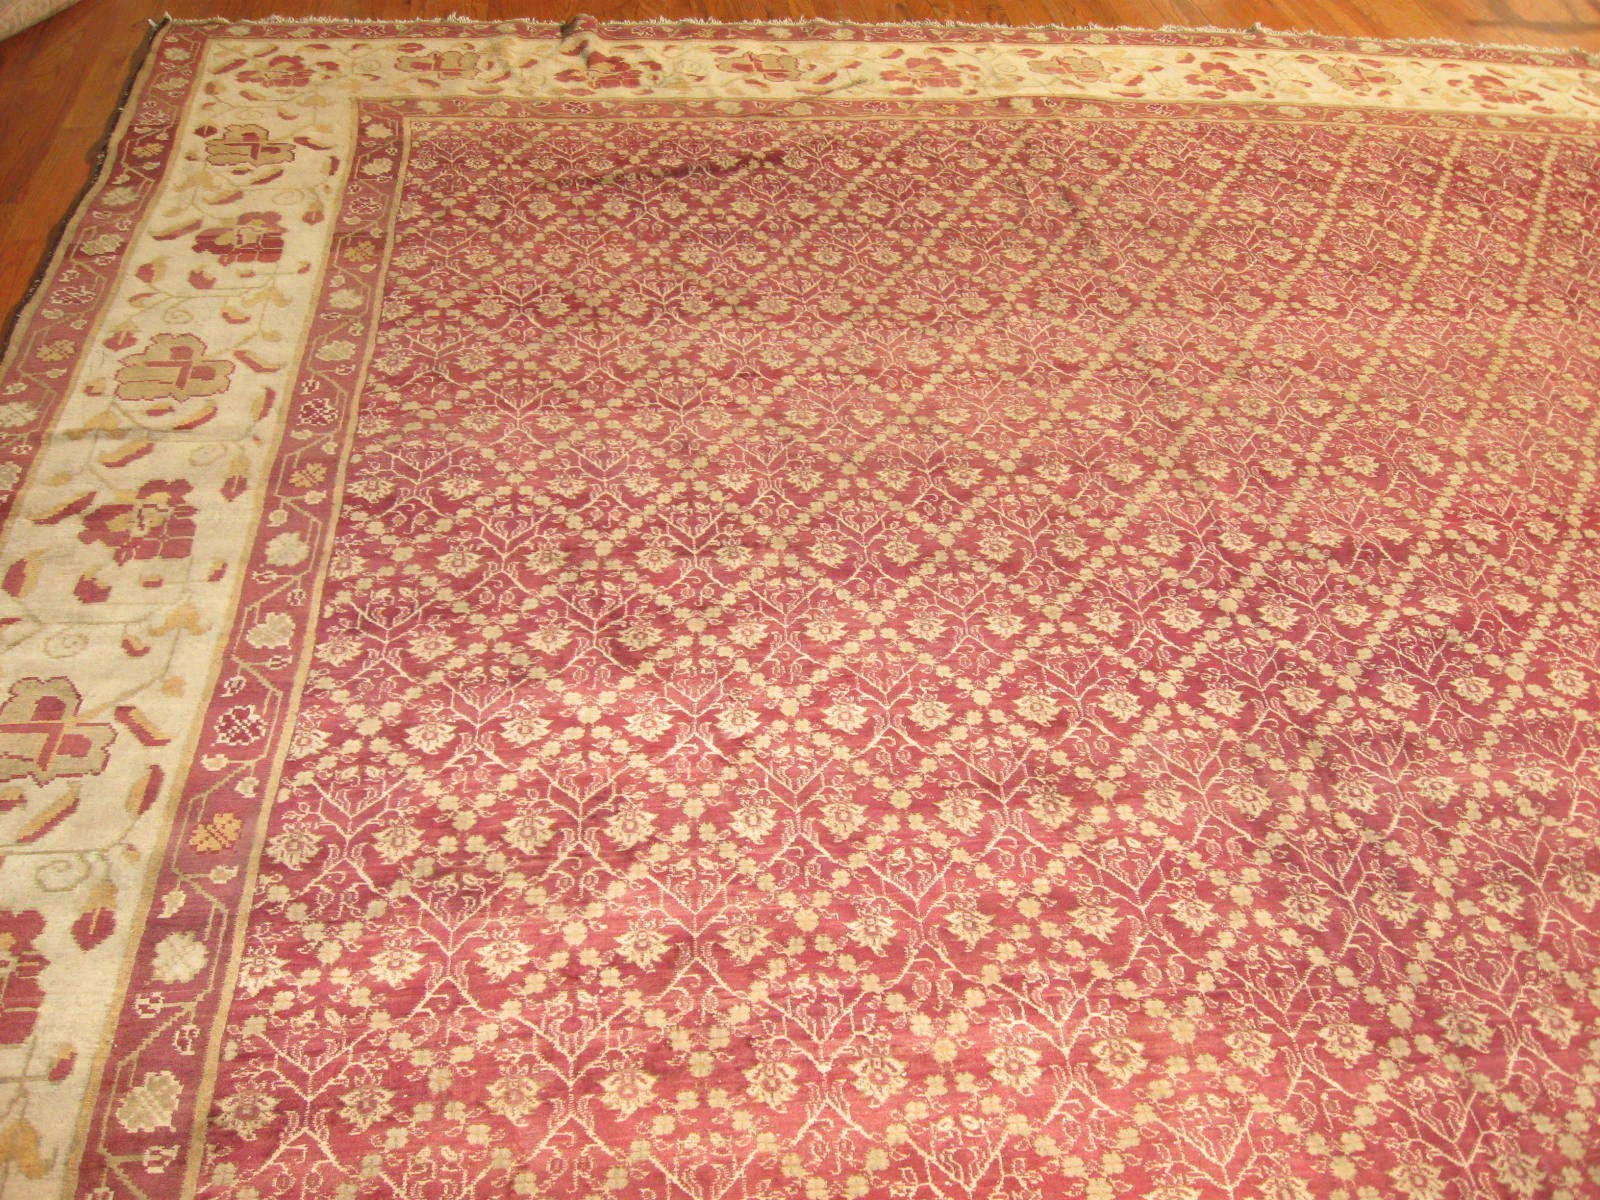 24261 antique India Agra carpet 17,5 x 27,2 (1)